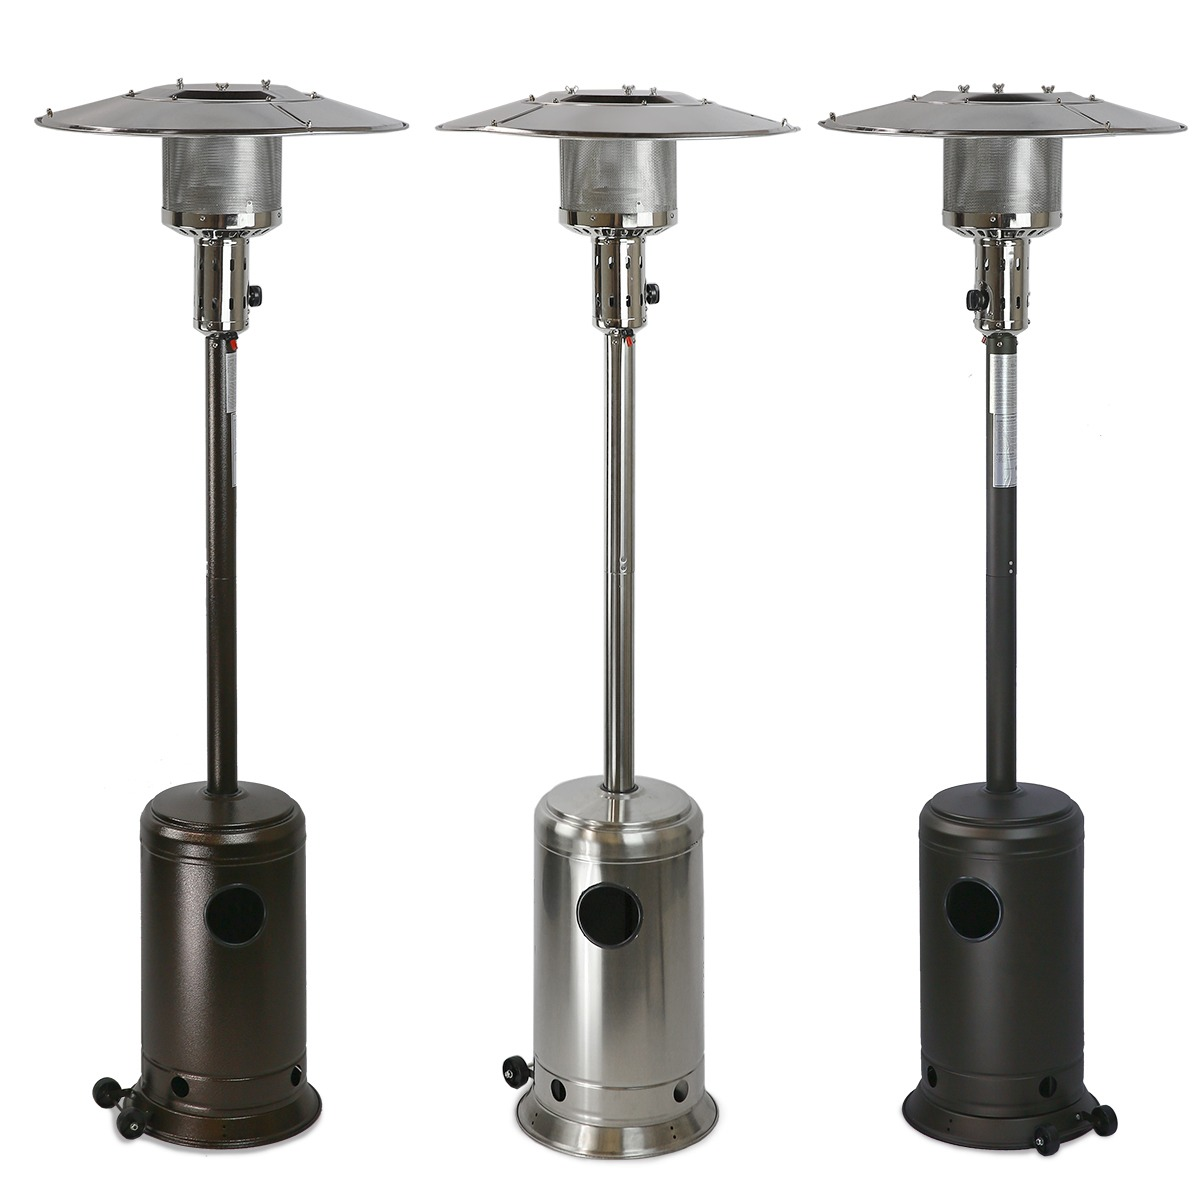 48000 BTU Standing Propane Patio Heater Stainless Steel / Bronze ...